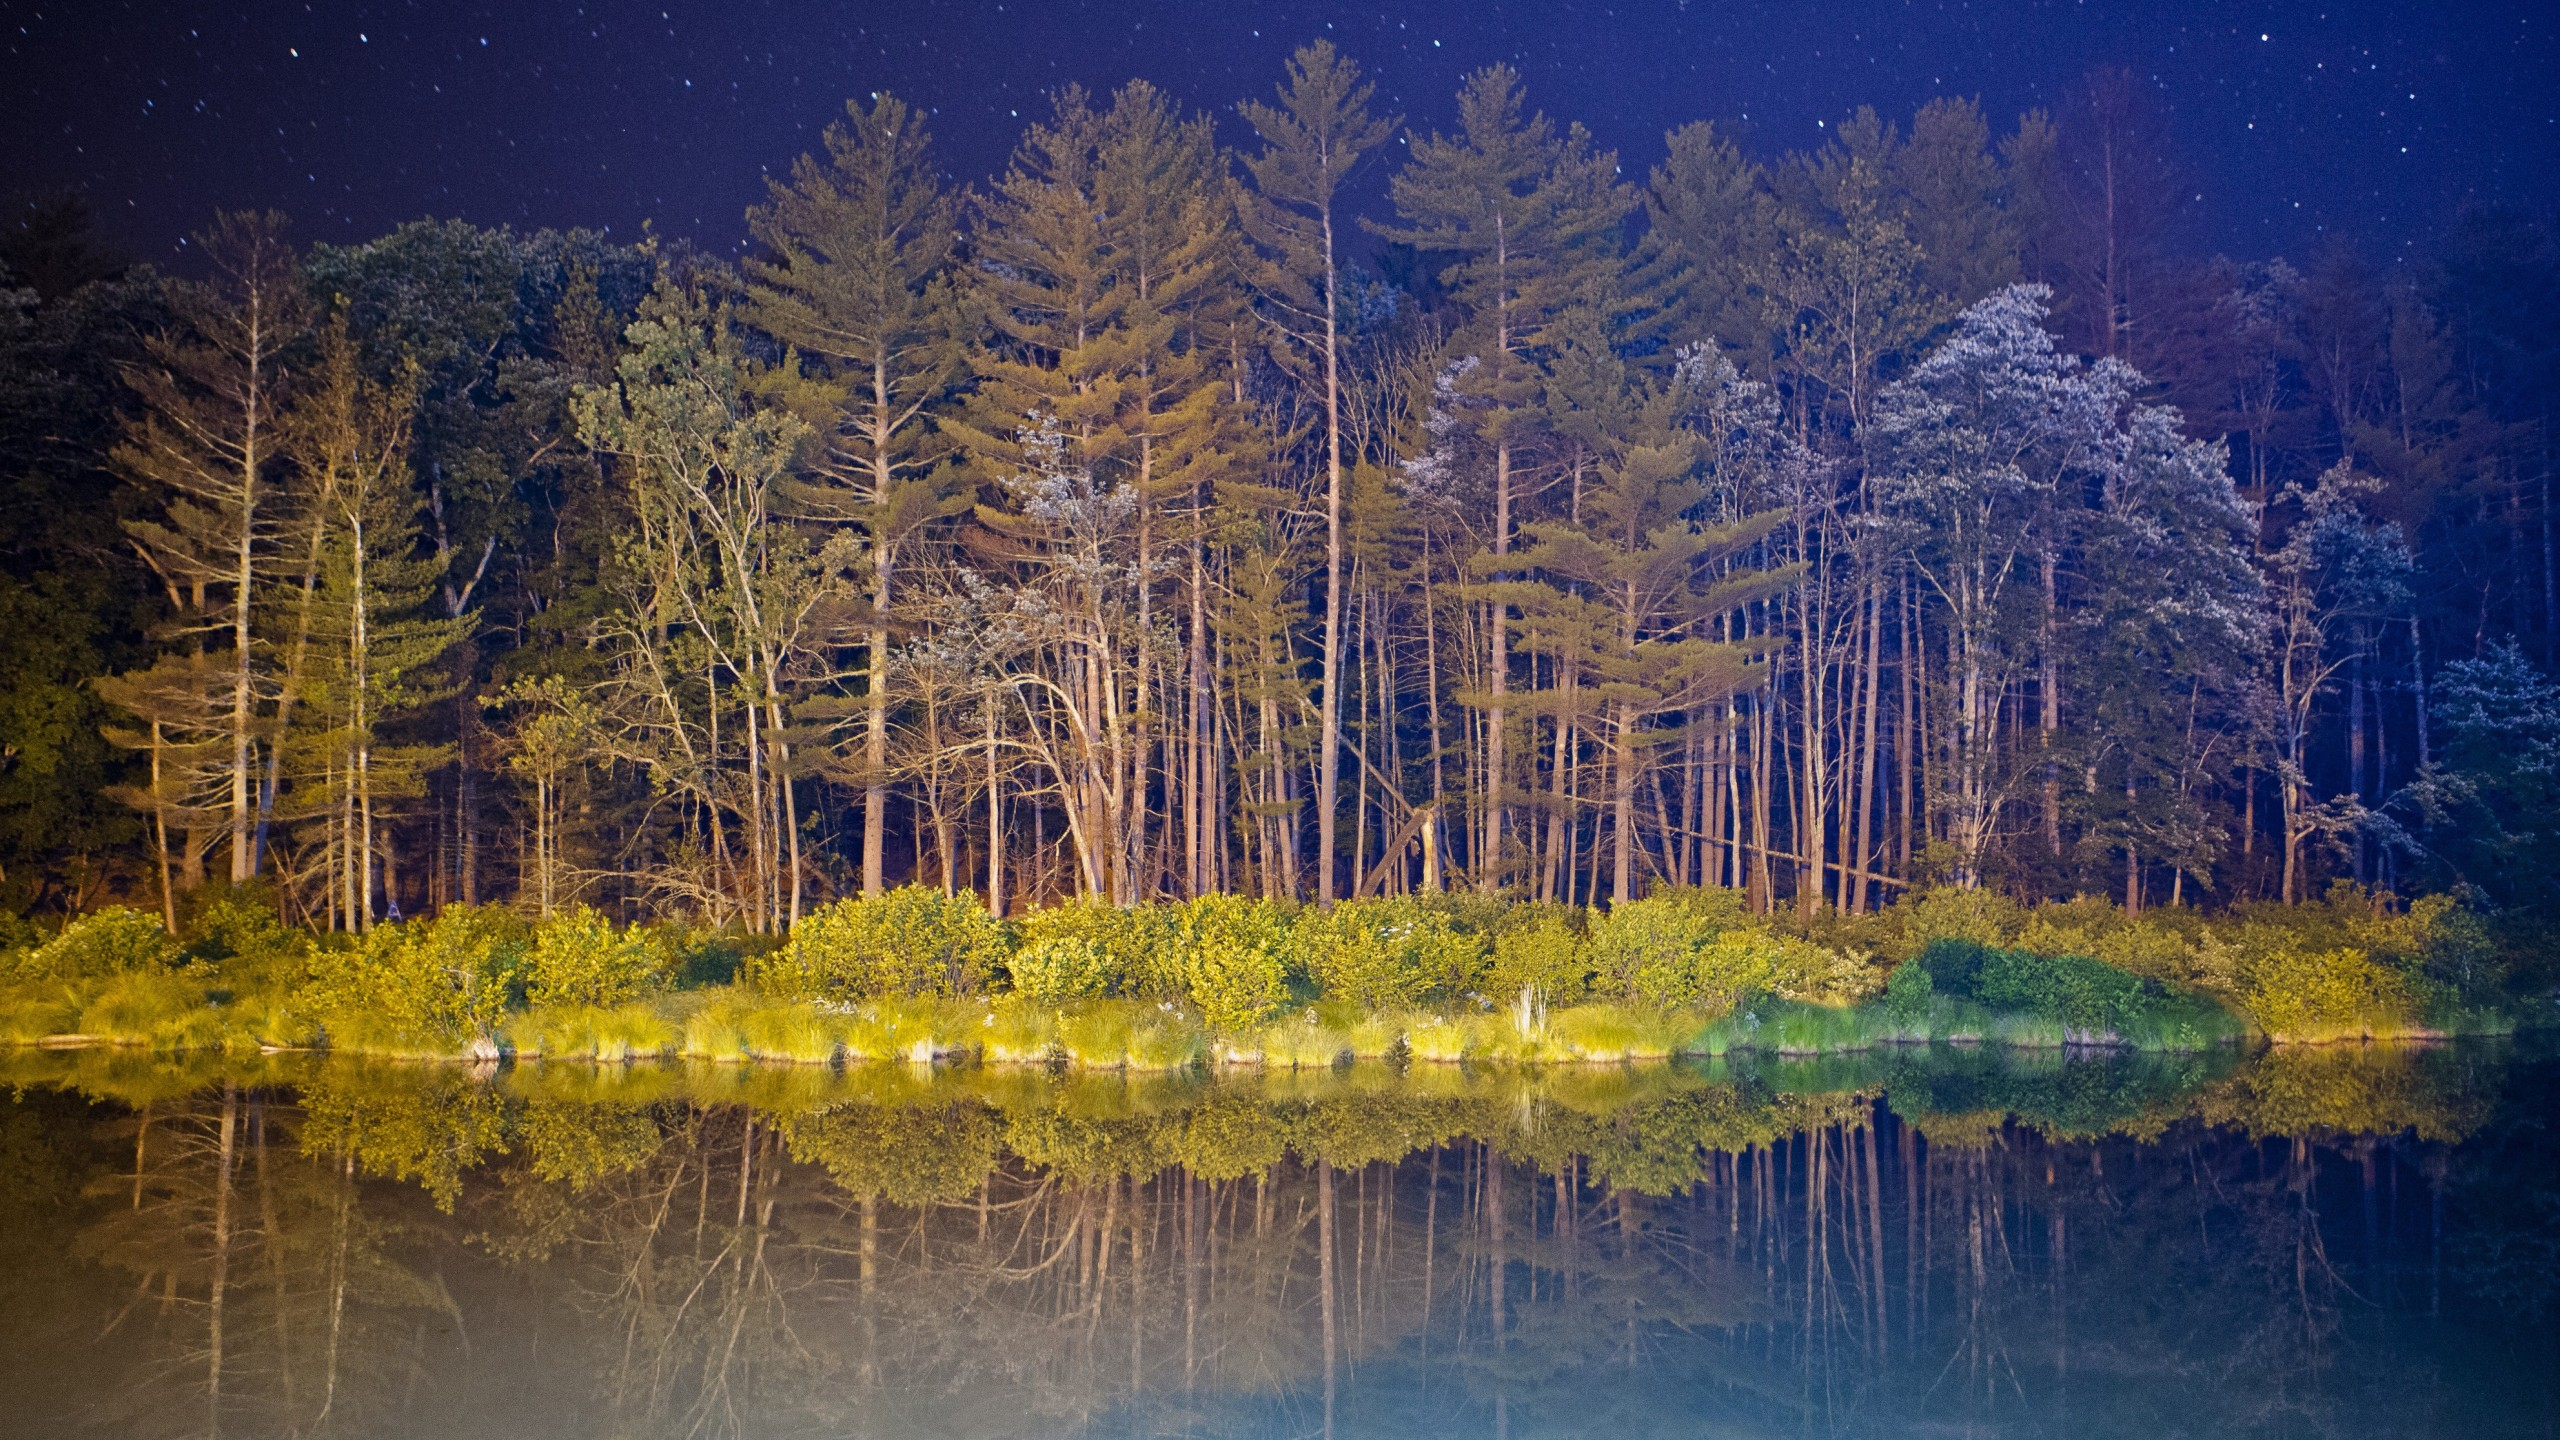 Wallpaper android, 5k, 4k wallpaper, forest, landscape, night, pond, Nature  #3430